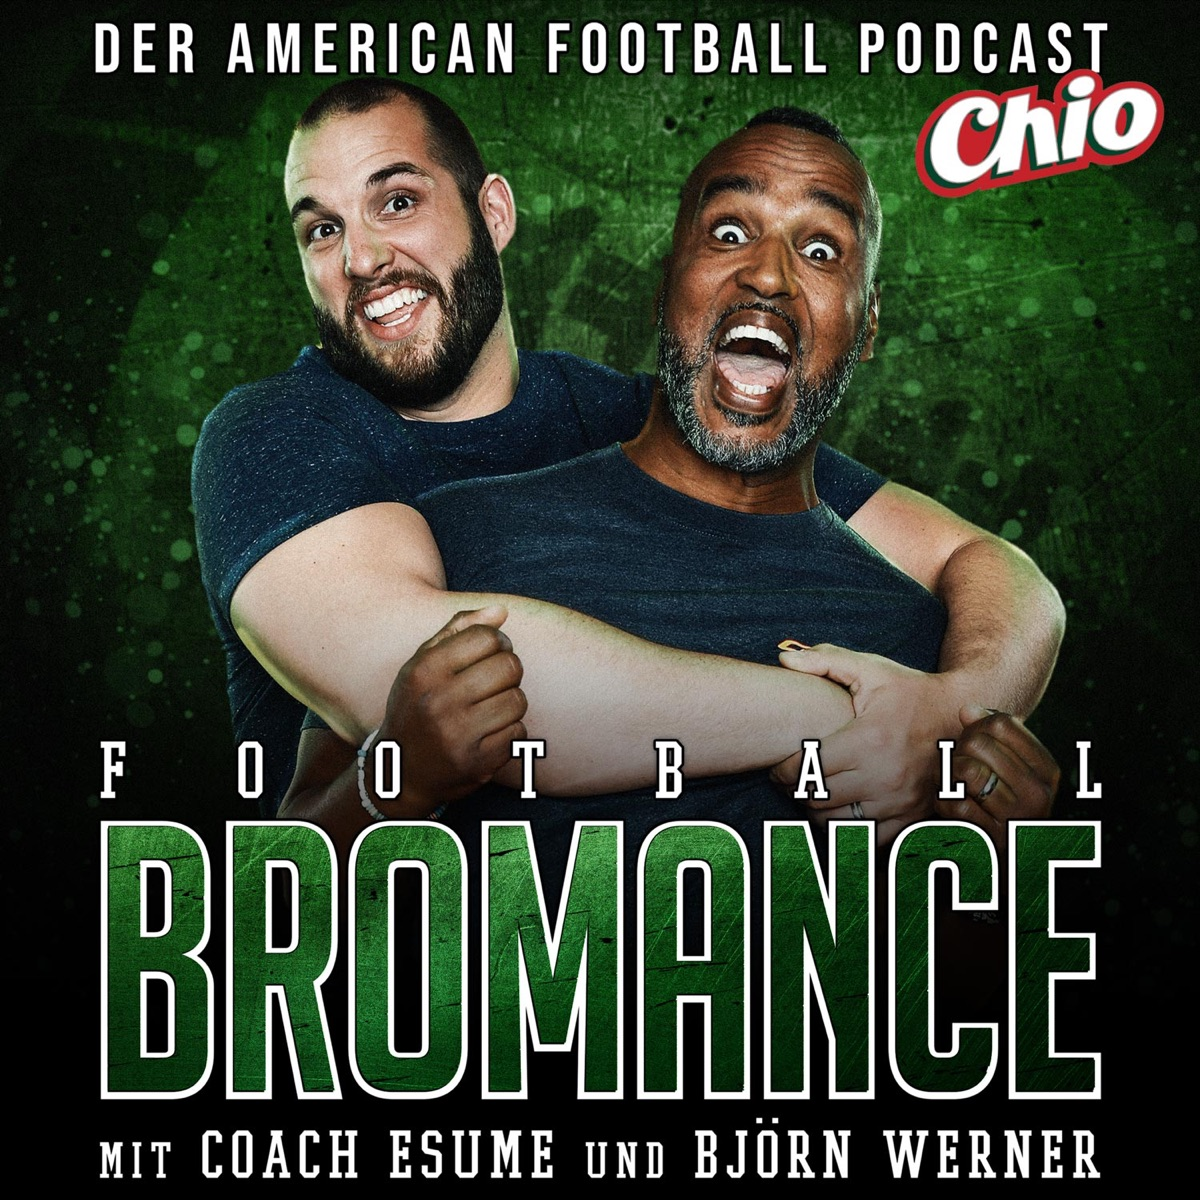 FOOTBALL BROMANCE LIVE AUS HAMBURG